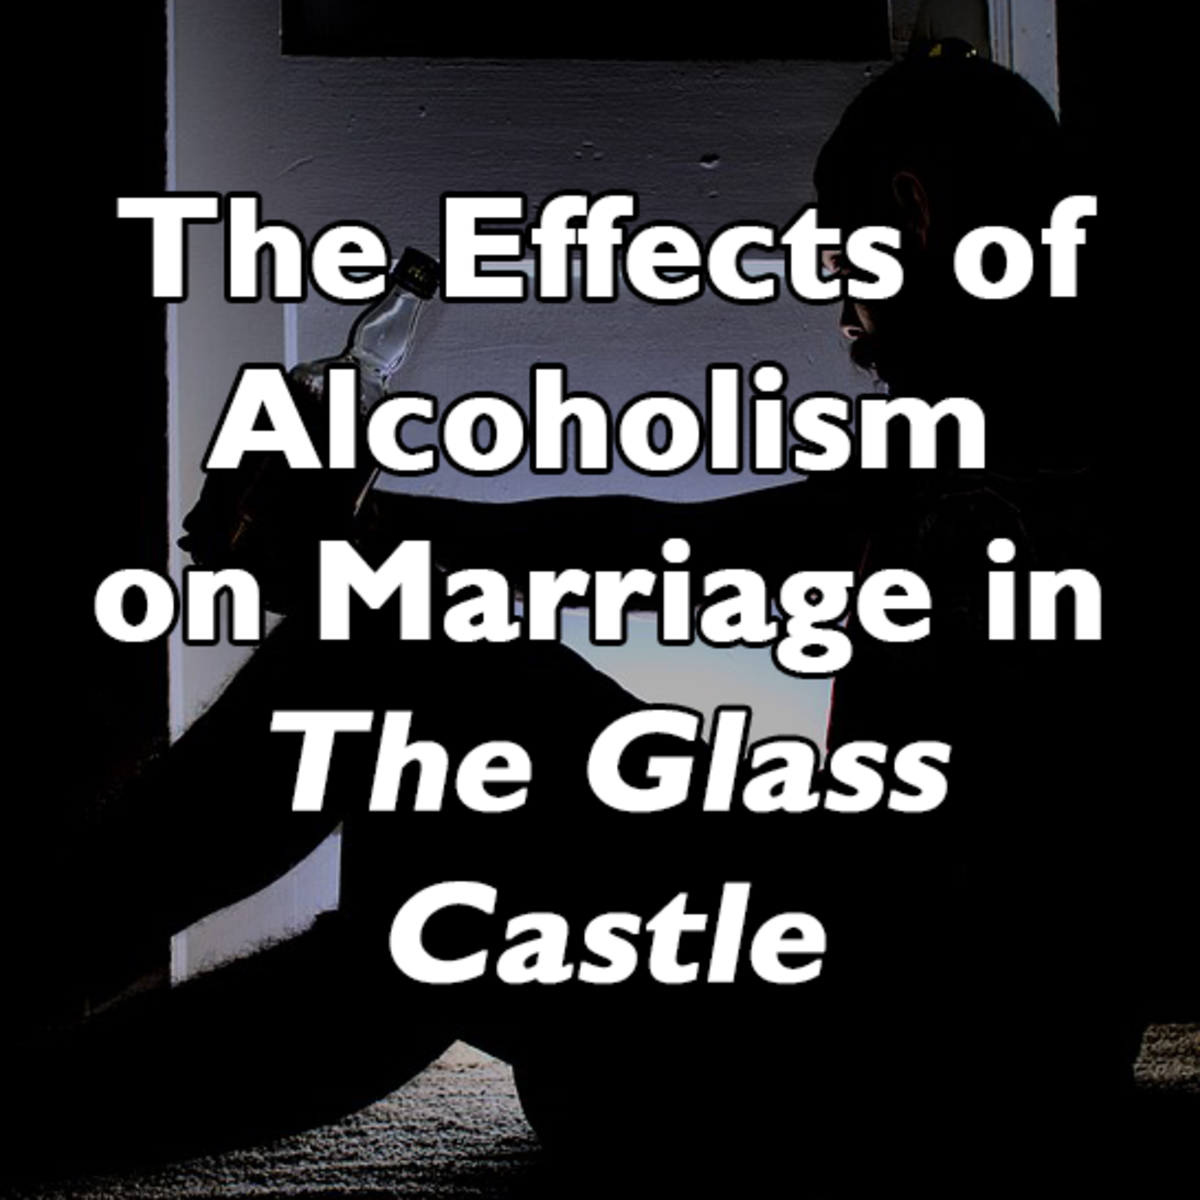 The Effects of Alcoholism on Marriage in